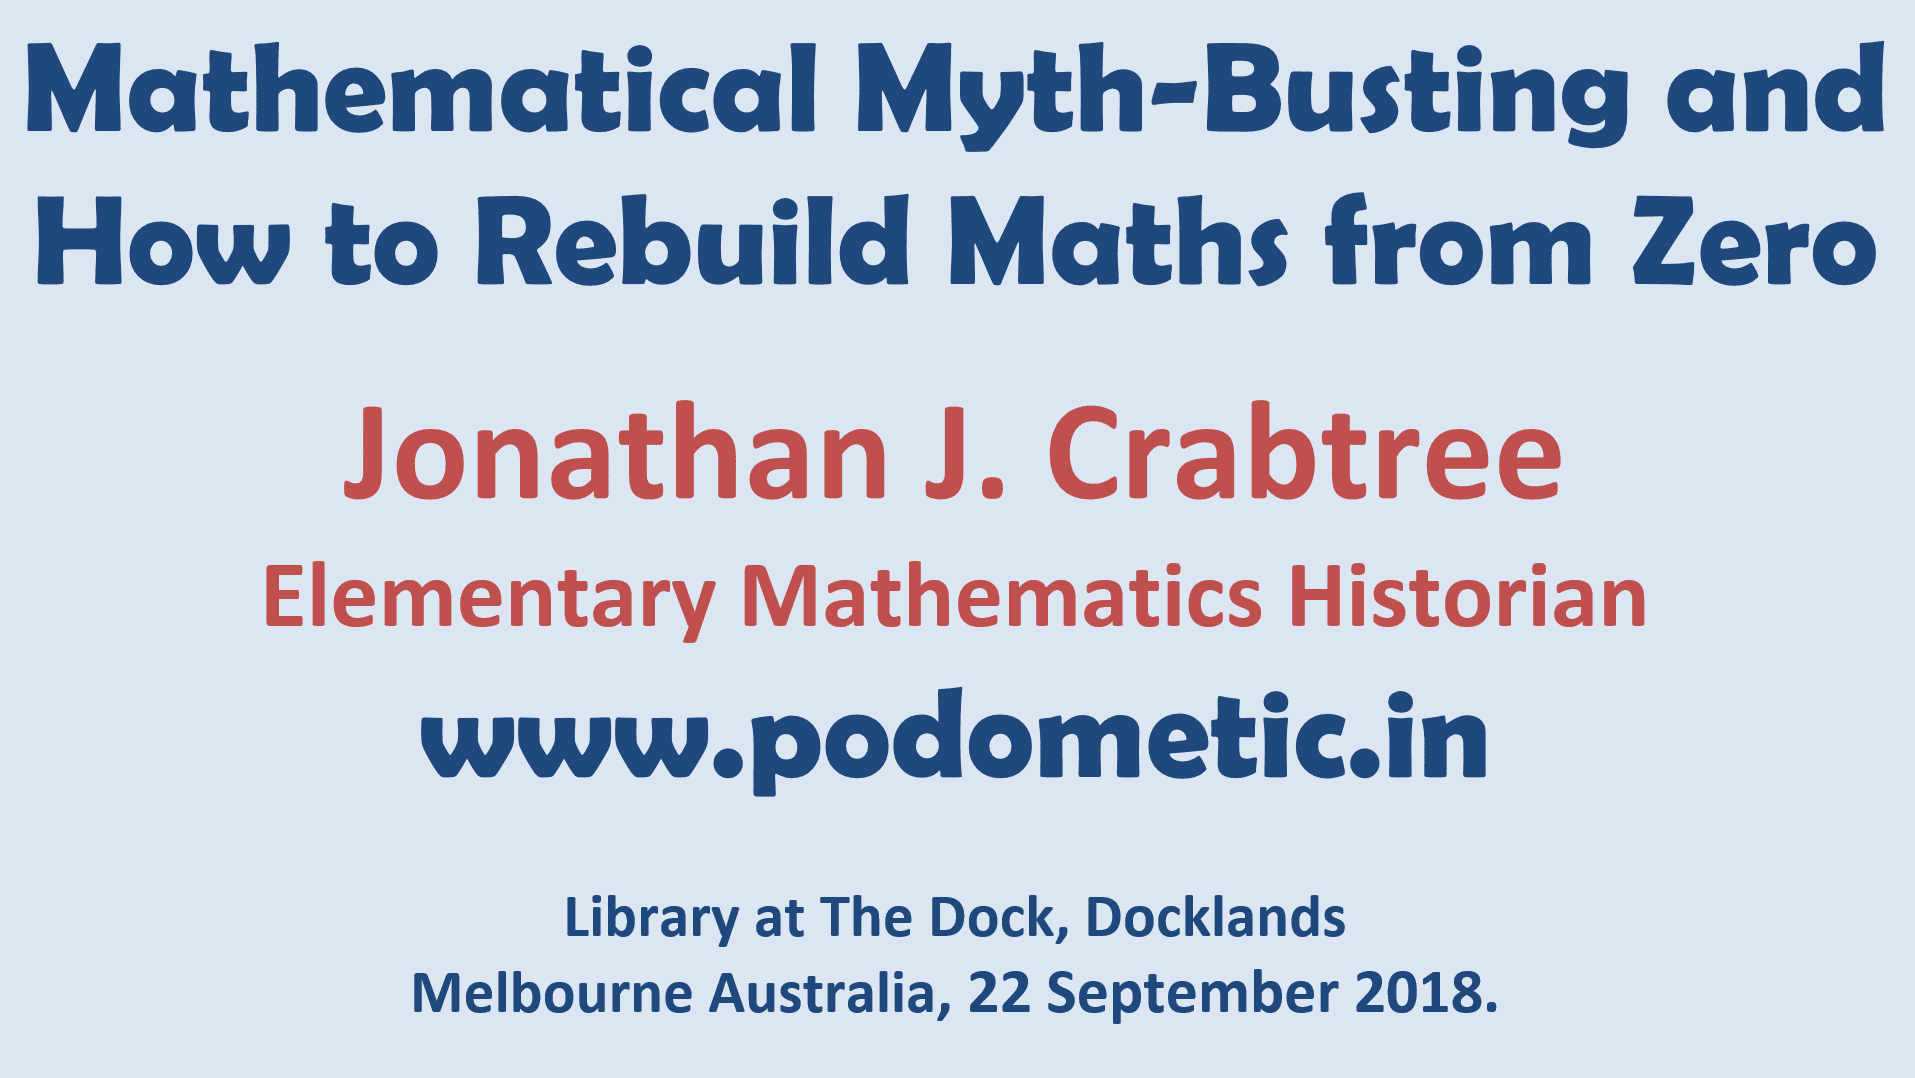 Mathematical Myth-Busting and How to Rebuild Maths from Zero